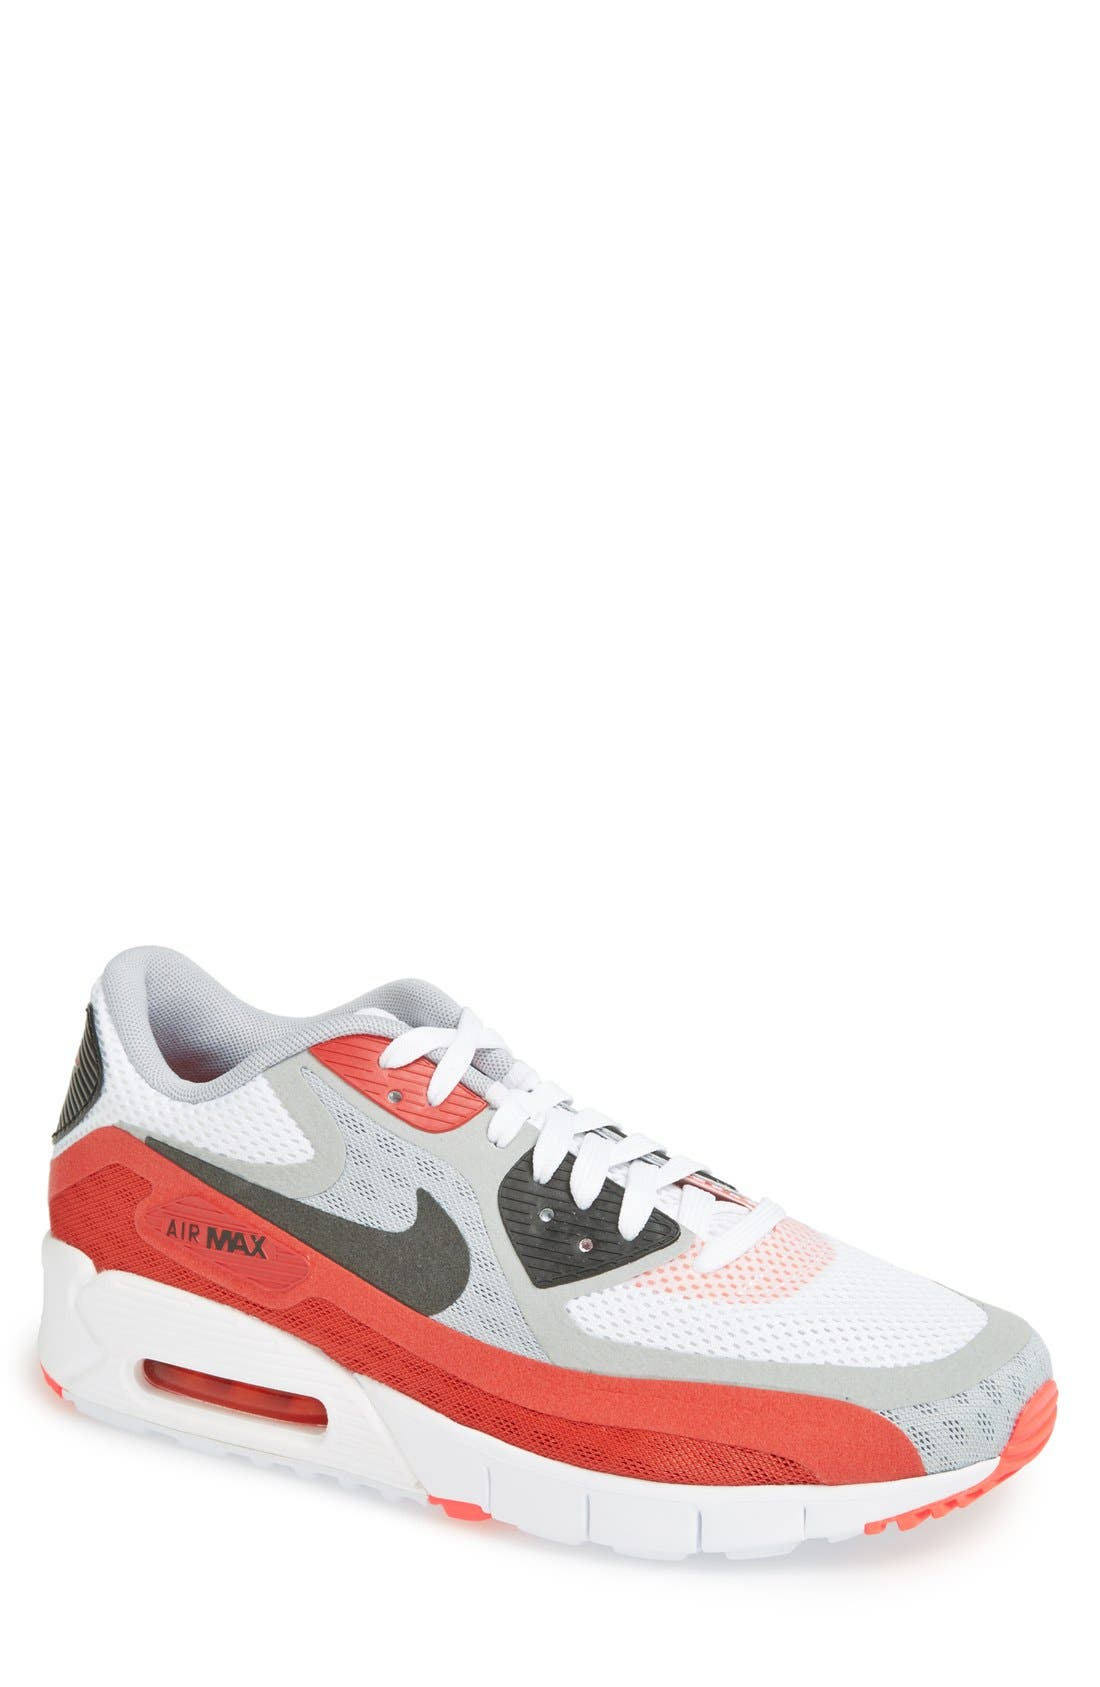 Main Image - Nike 'Air Max 90 Breeze' Sneaker (Men)